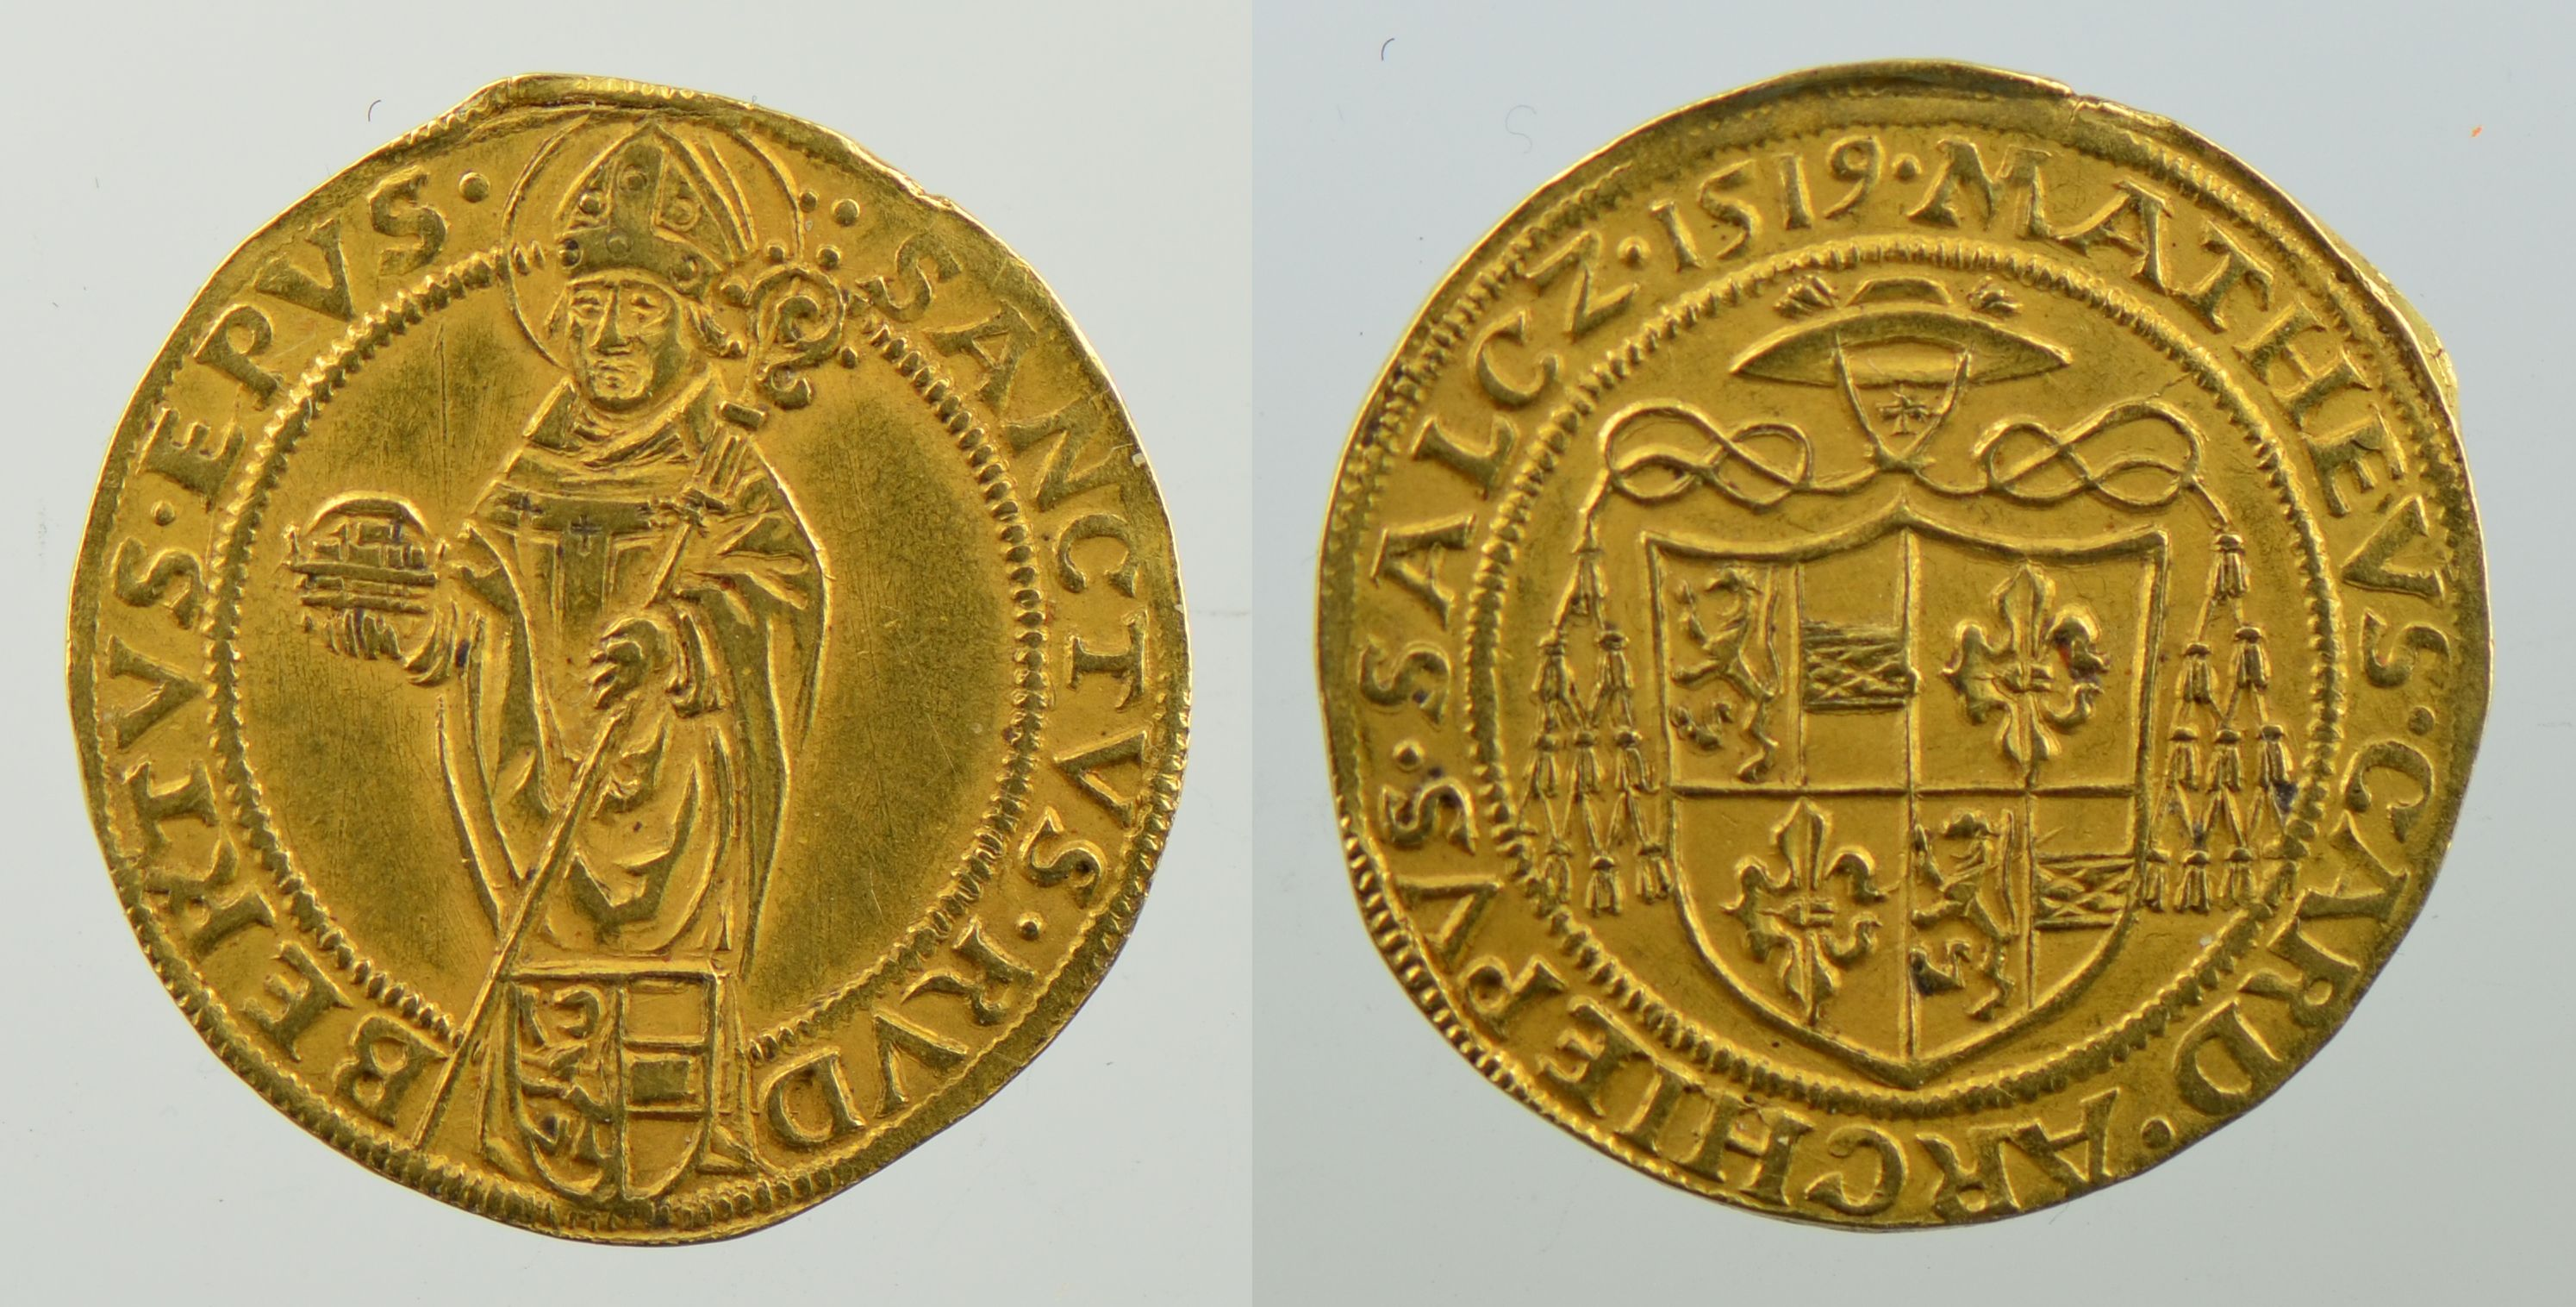 Goldgulden 1519, Schweizer Nationalmuseum